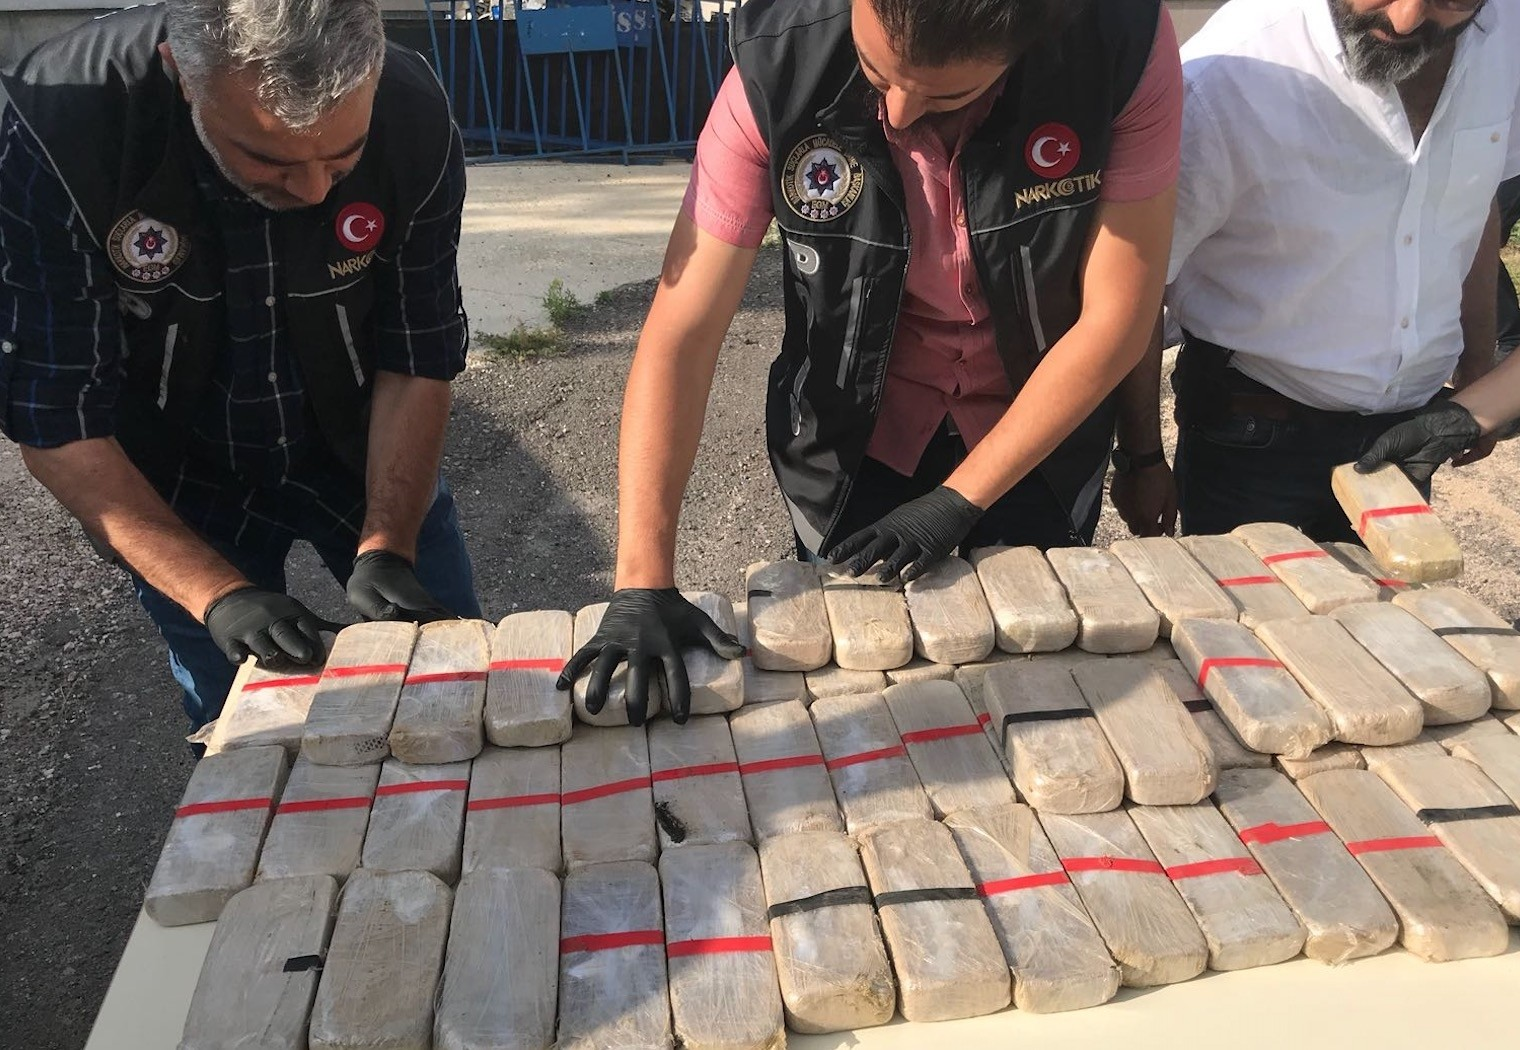 Narcotics police in the central city of Niu011fde examine packs of heroin smuggled inside a hidden compartment of a car on June 21.